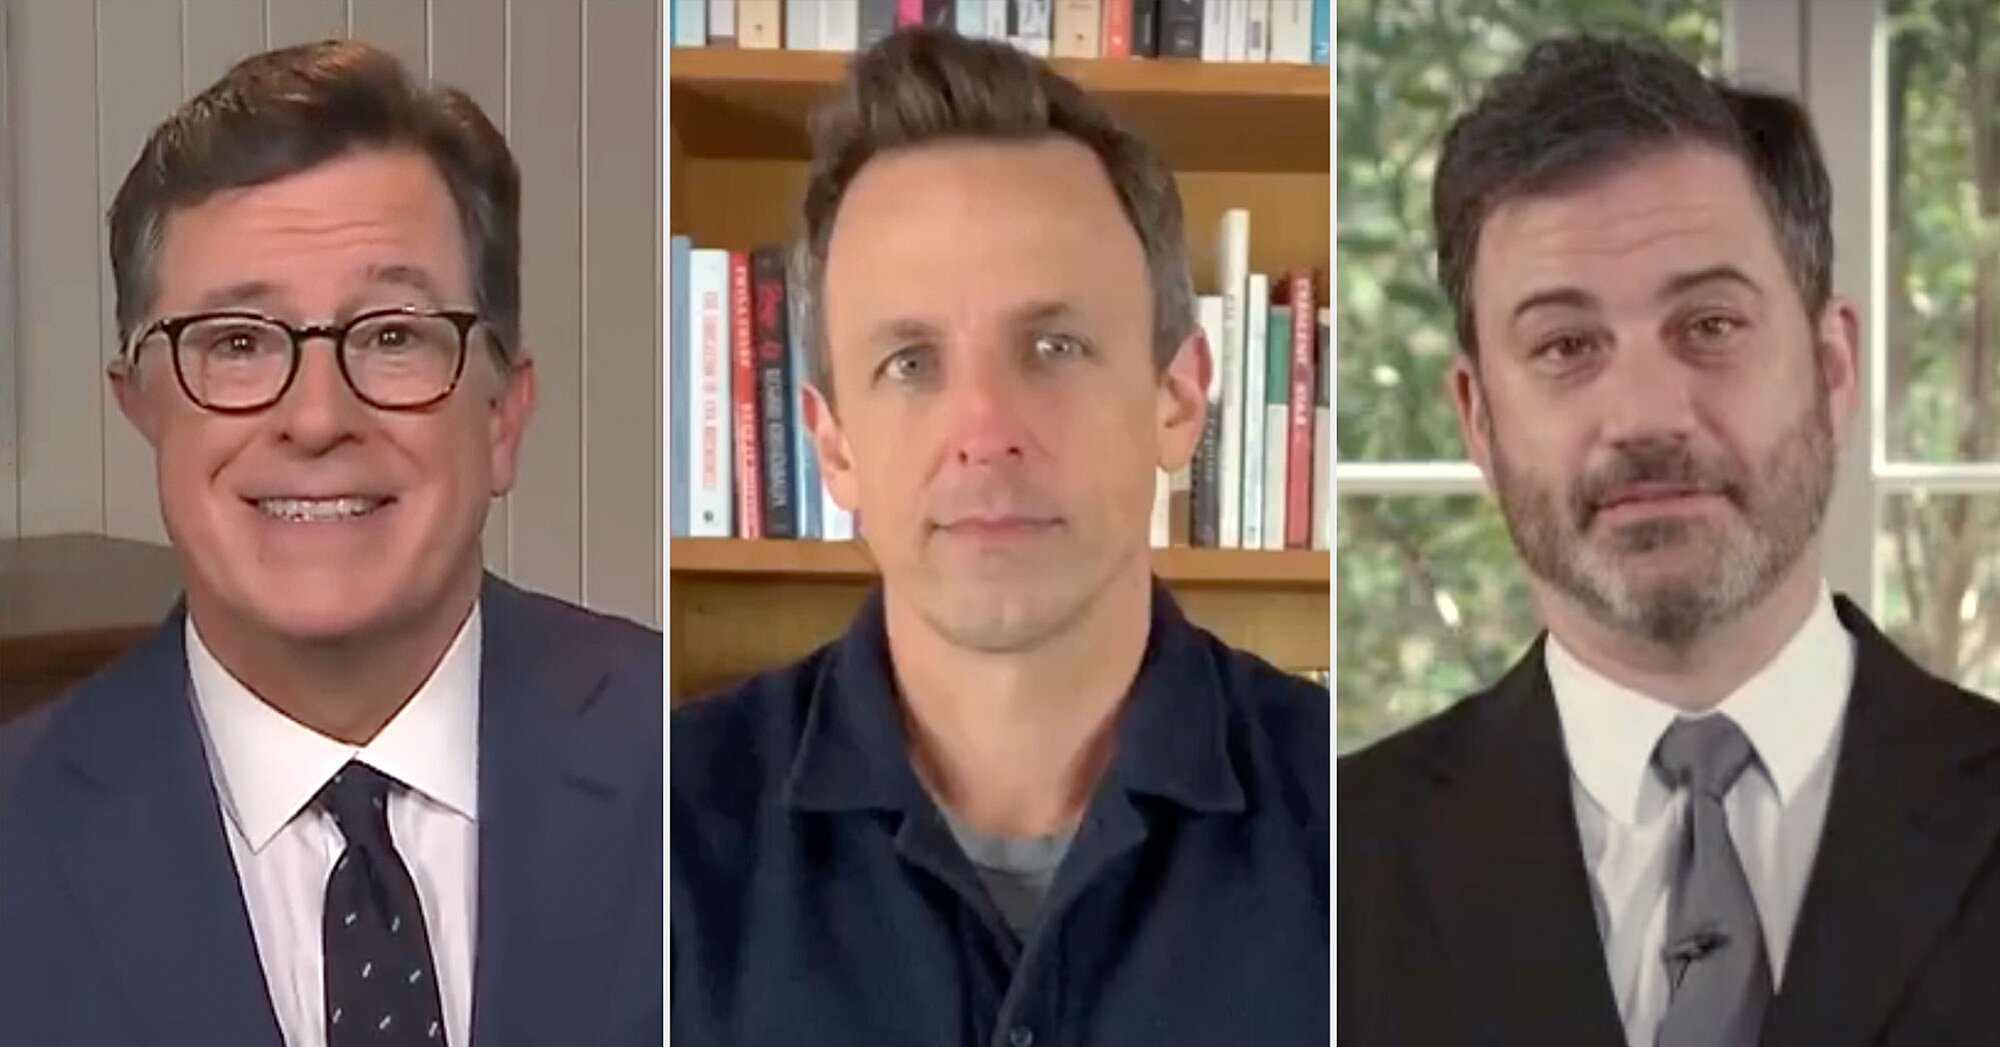 Late night returns: Stephen Colbert, Jimmy Kimmel, Seth Meyers host from home